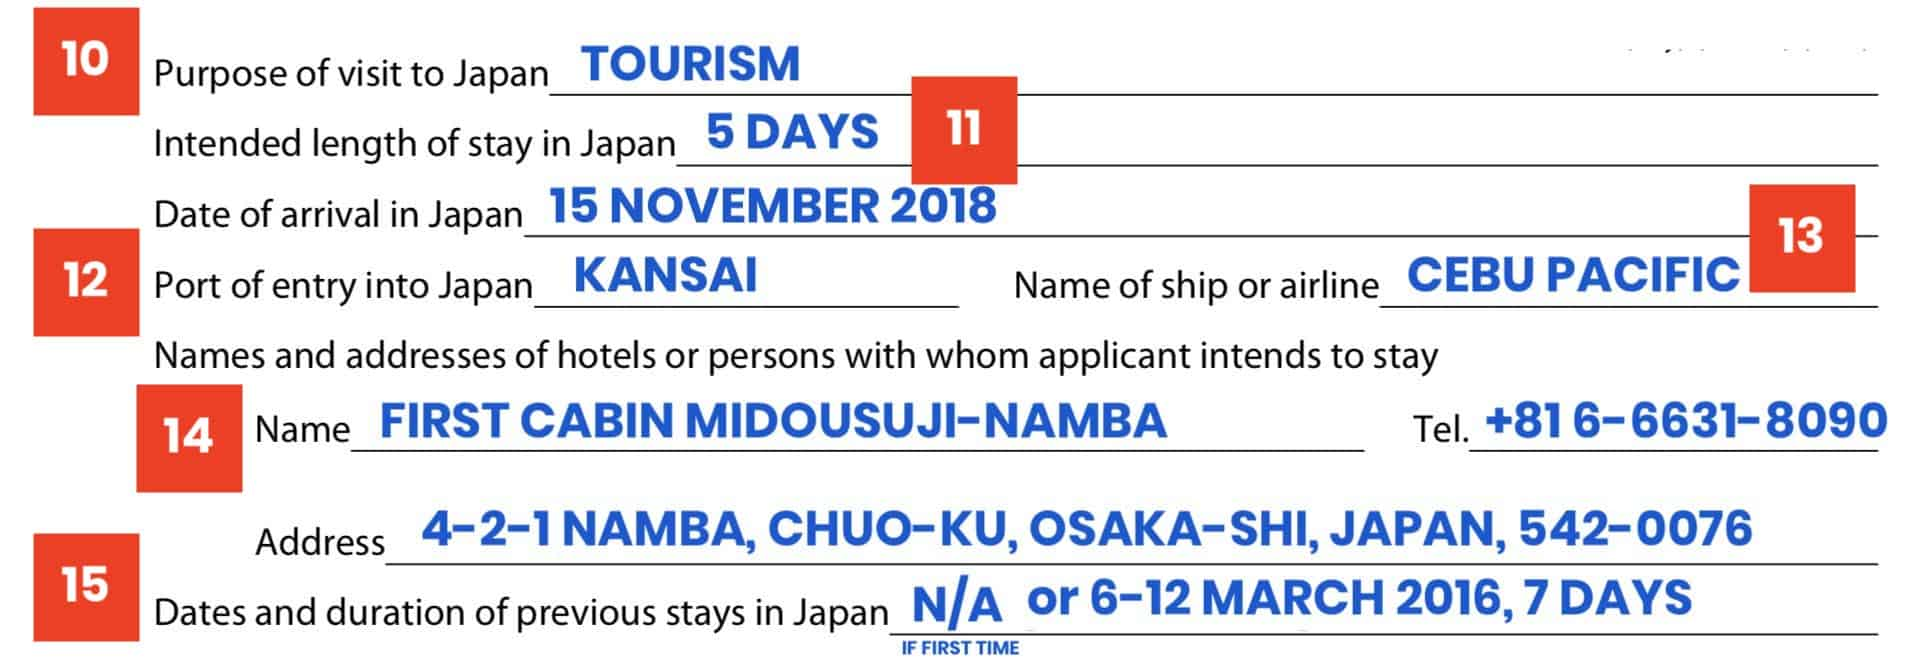 Japan-Visa-Form-2 Visa Application Form To Enter Japan Word on dating application form, japan visa to enter, japan student visa, japan visa stamp, example application form, japan immigration, japan tourist, japan visa application fee,